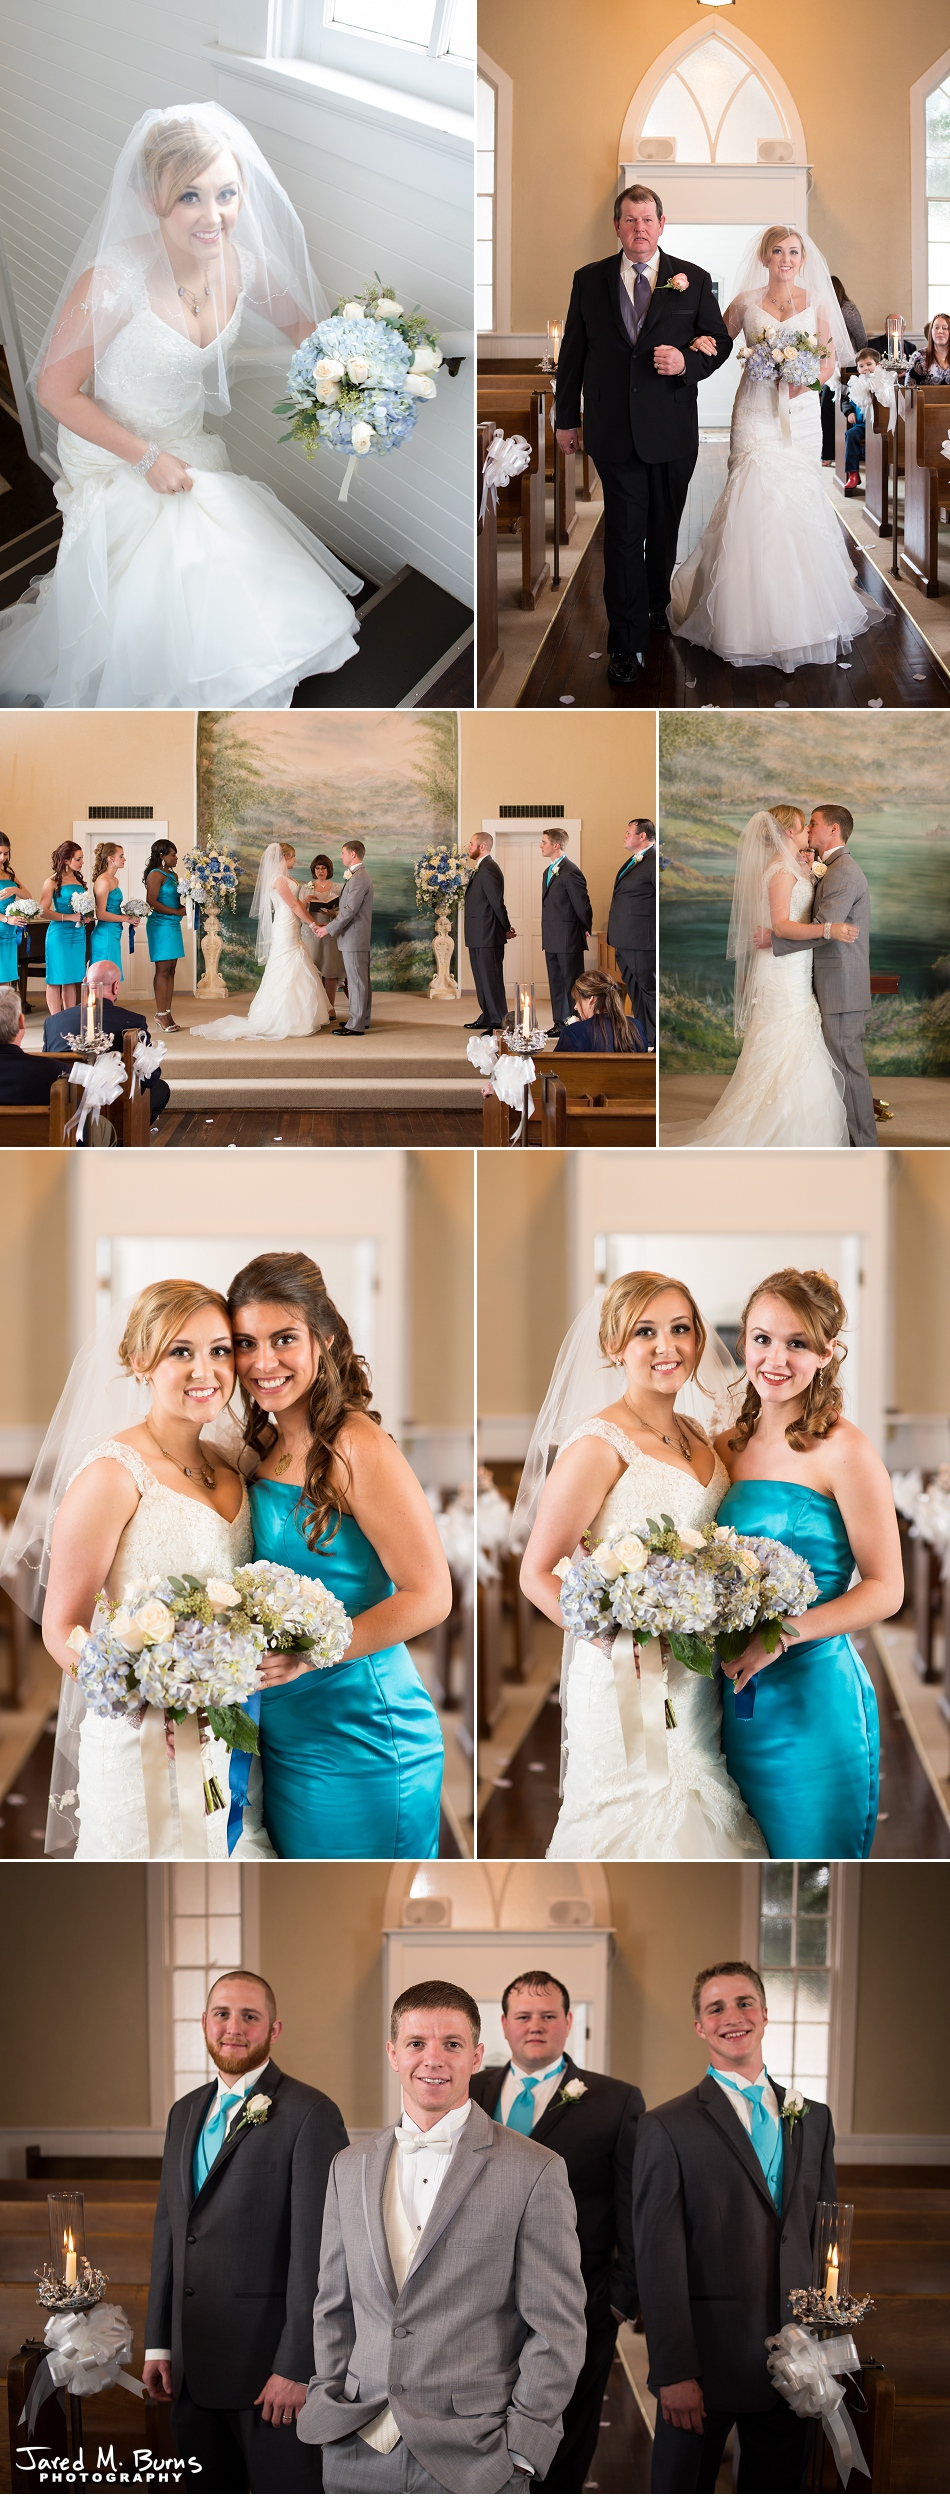 Belle Chapel Wedding Photographer, Snohomish, WA - Jared M. Burns (3)